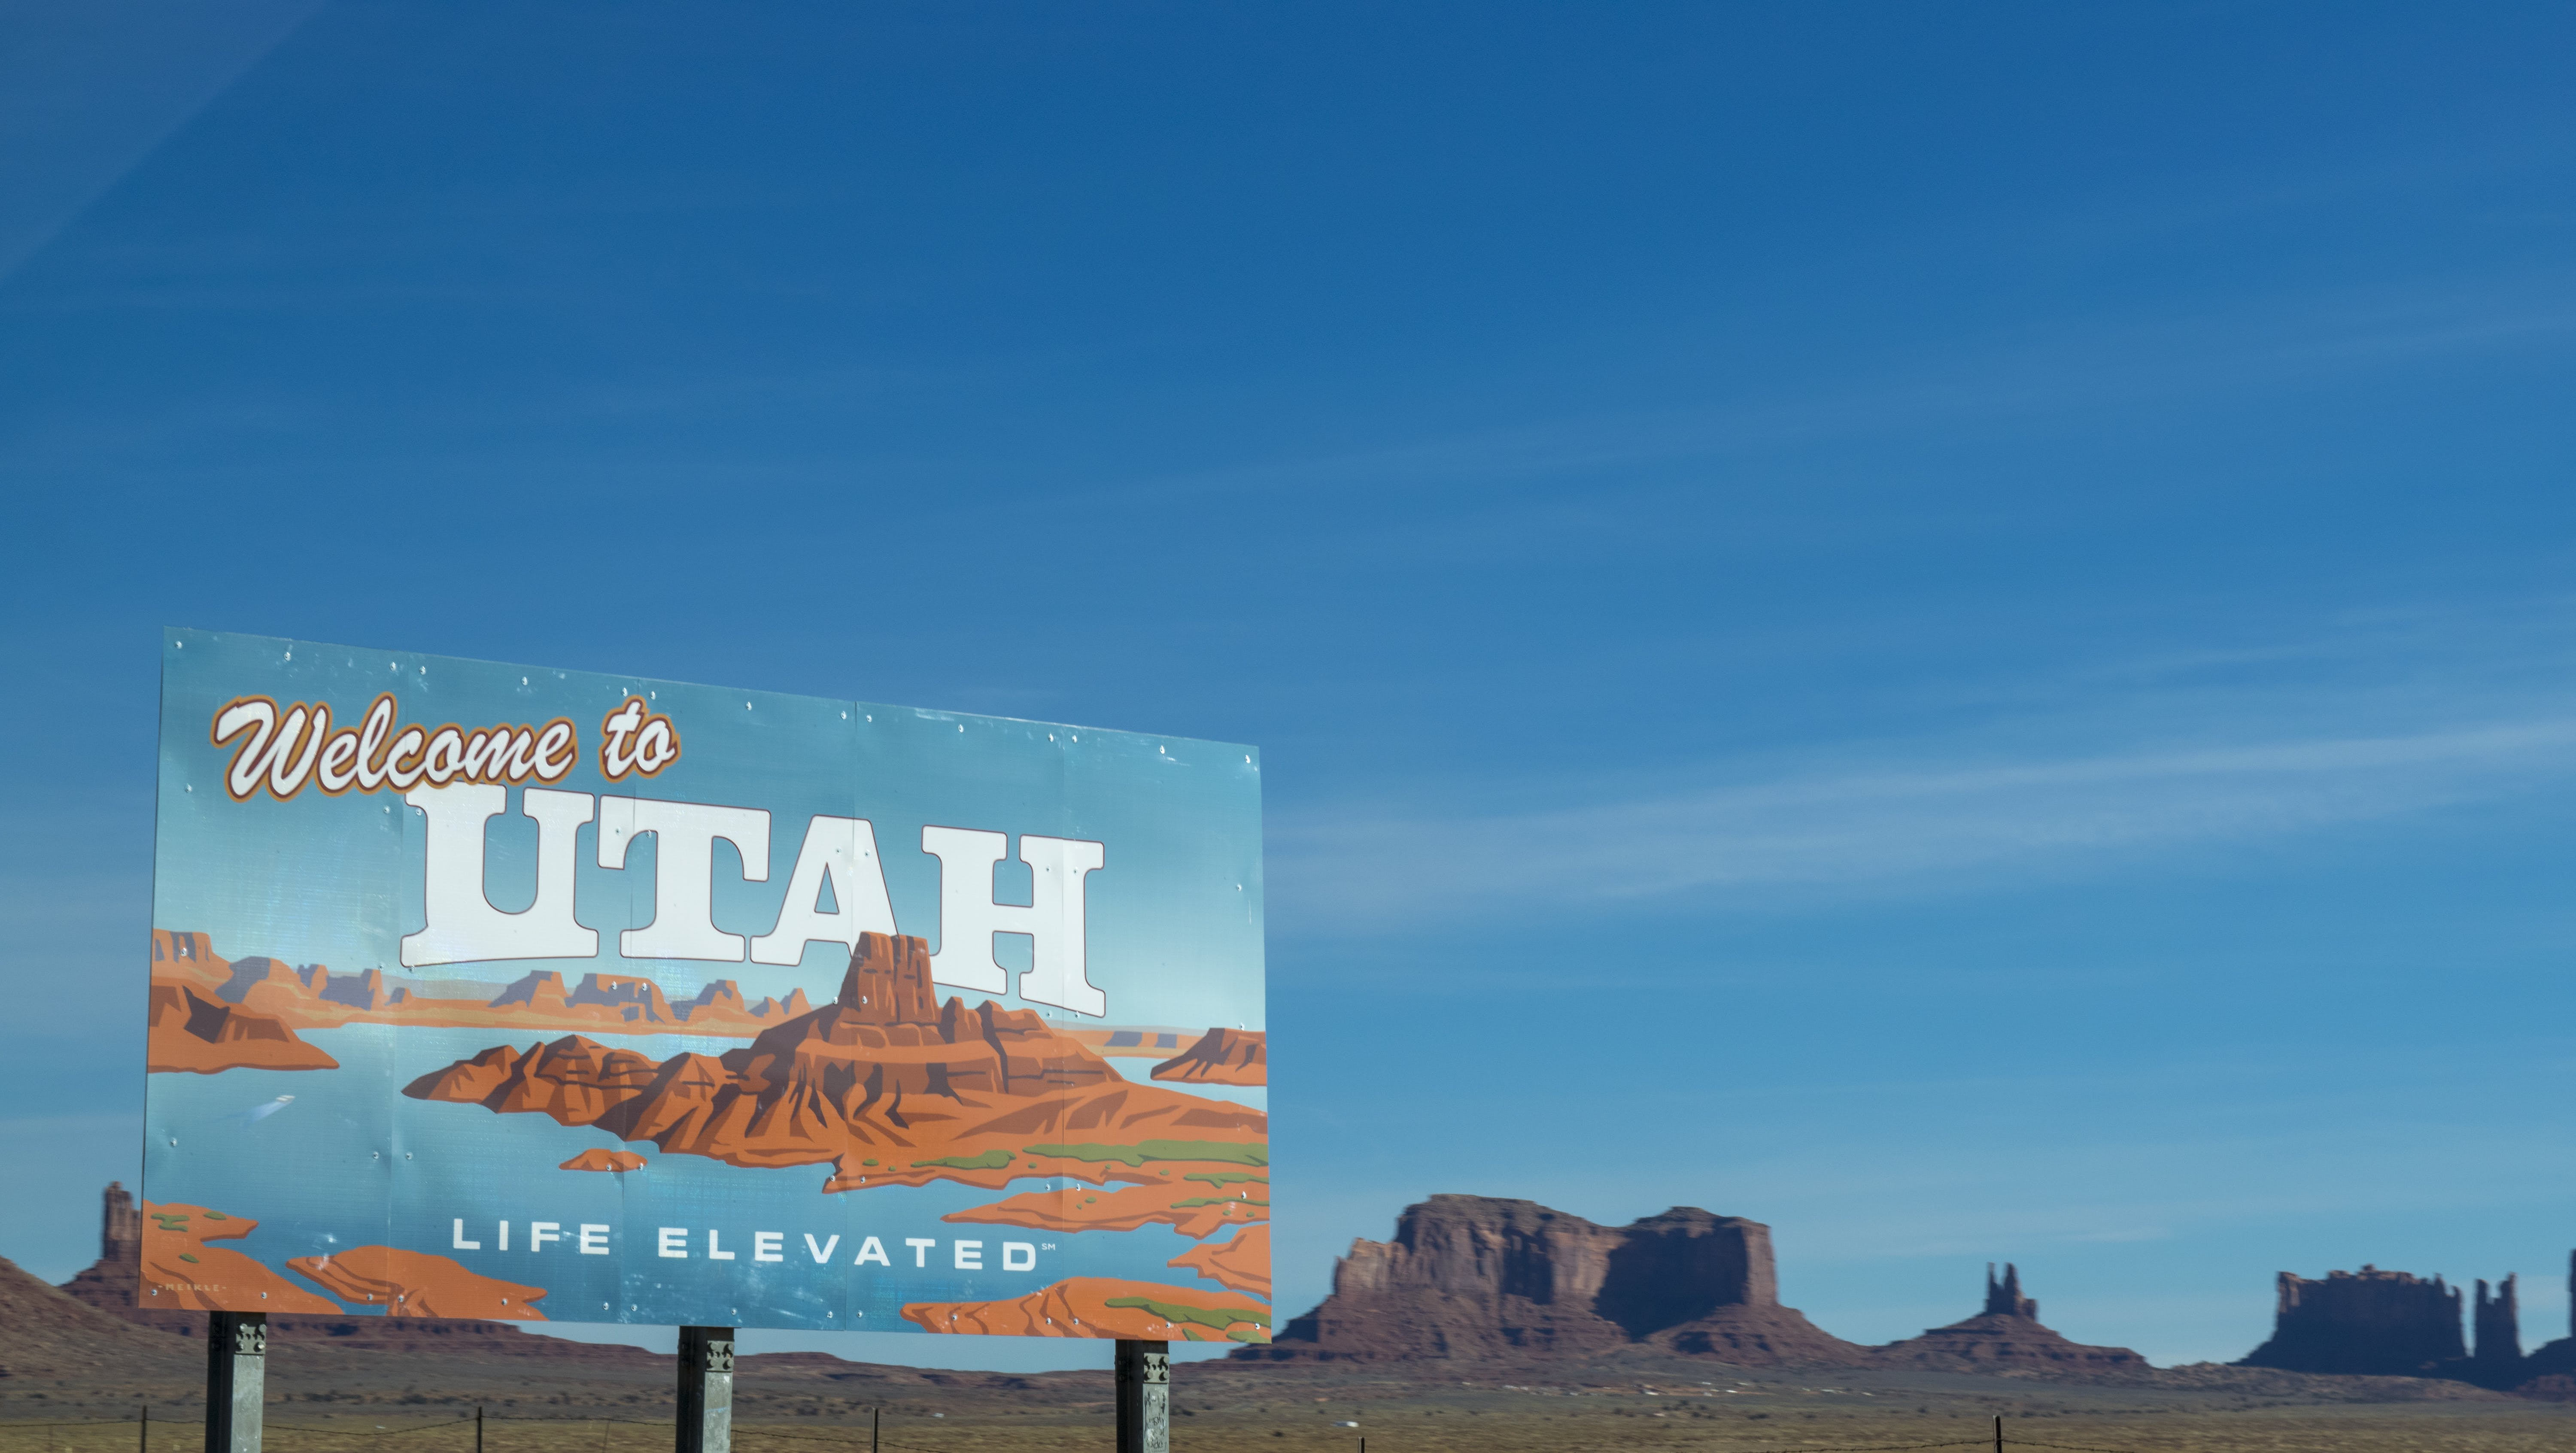 Welcome to Utah Poster Under Blue Daytime Sky